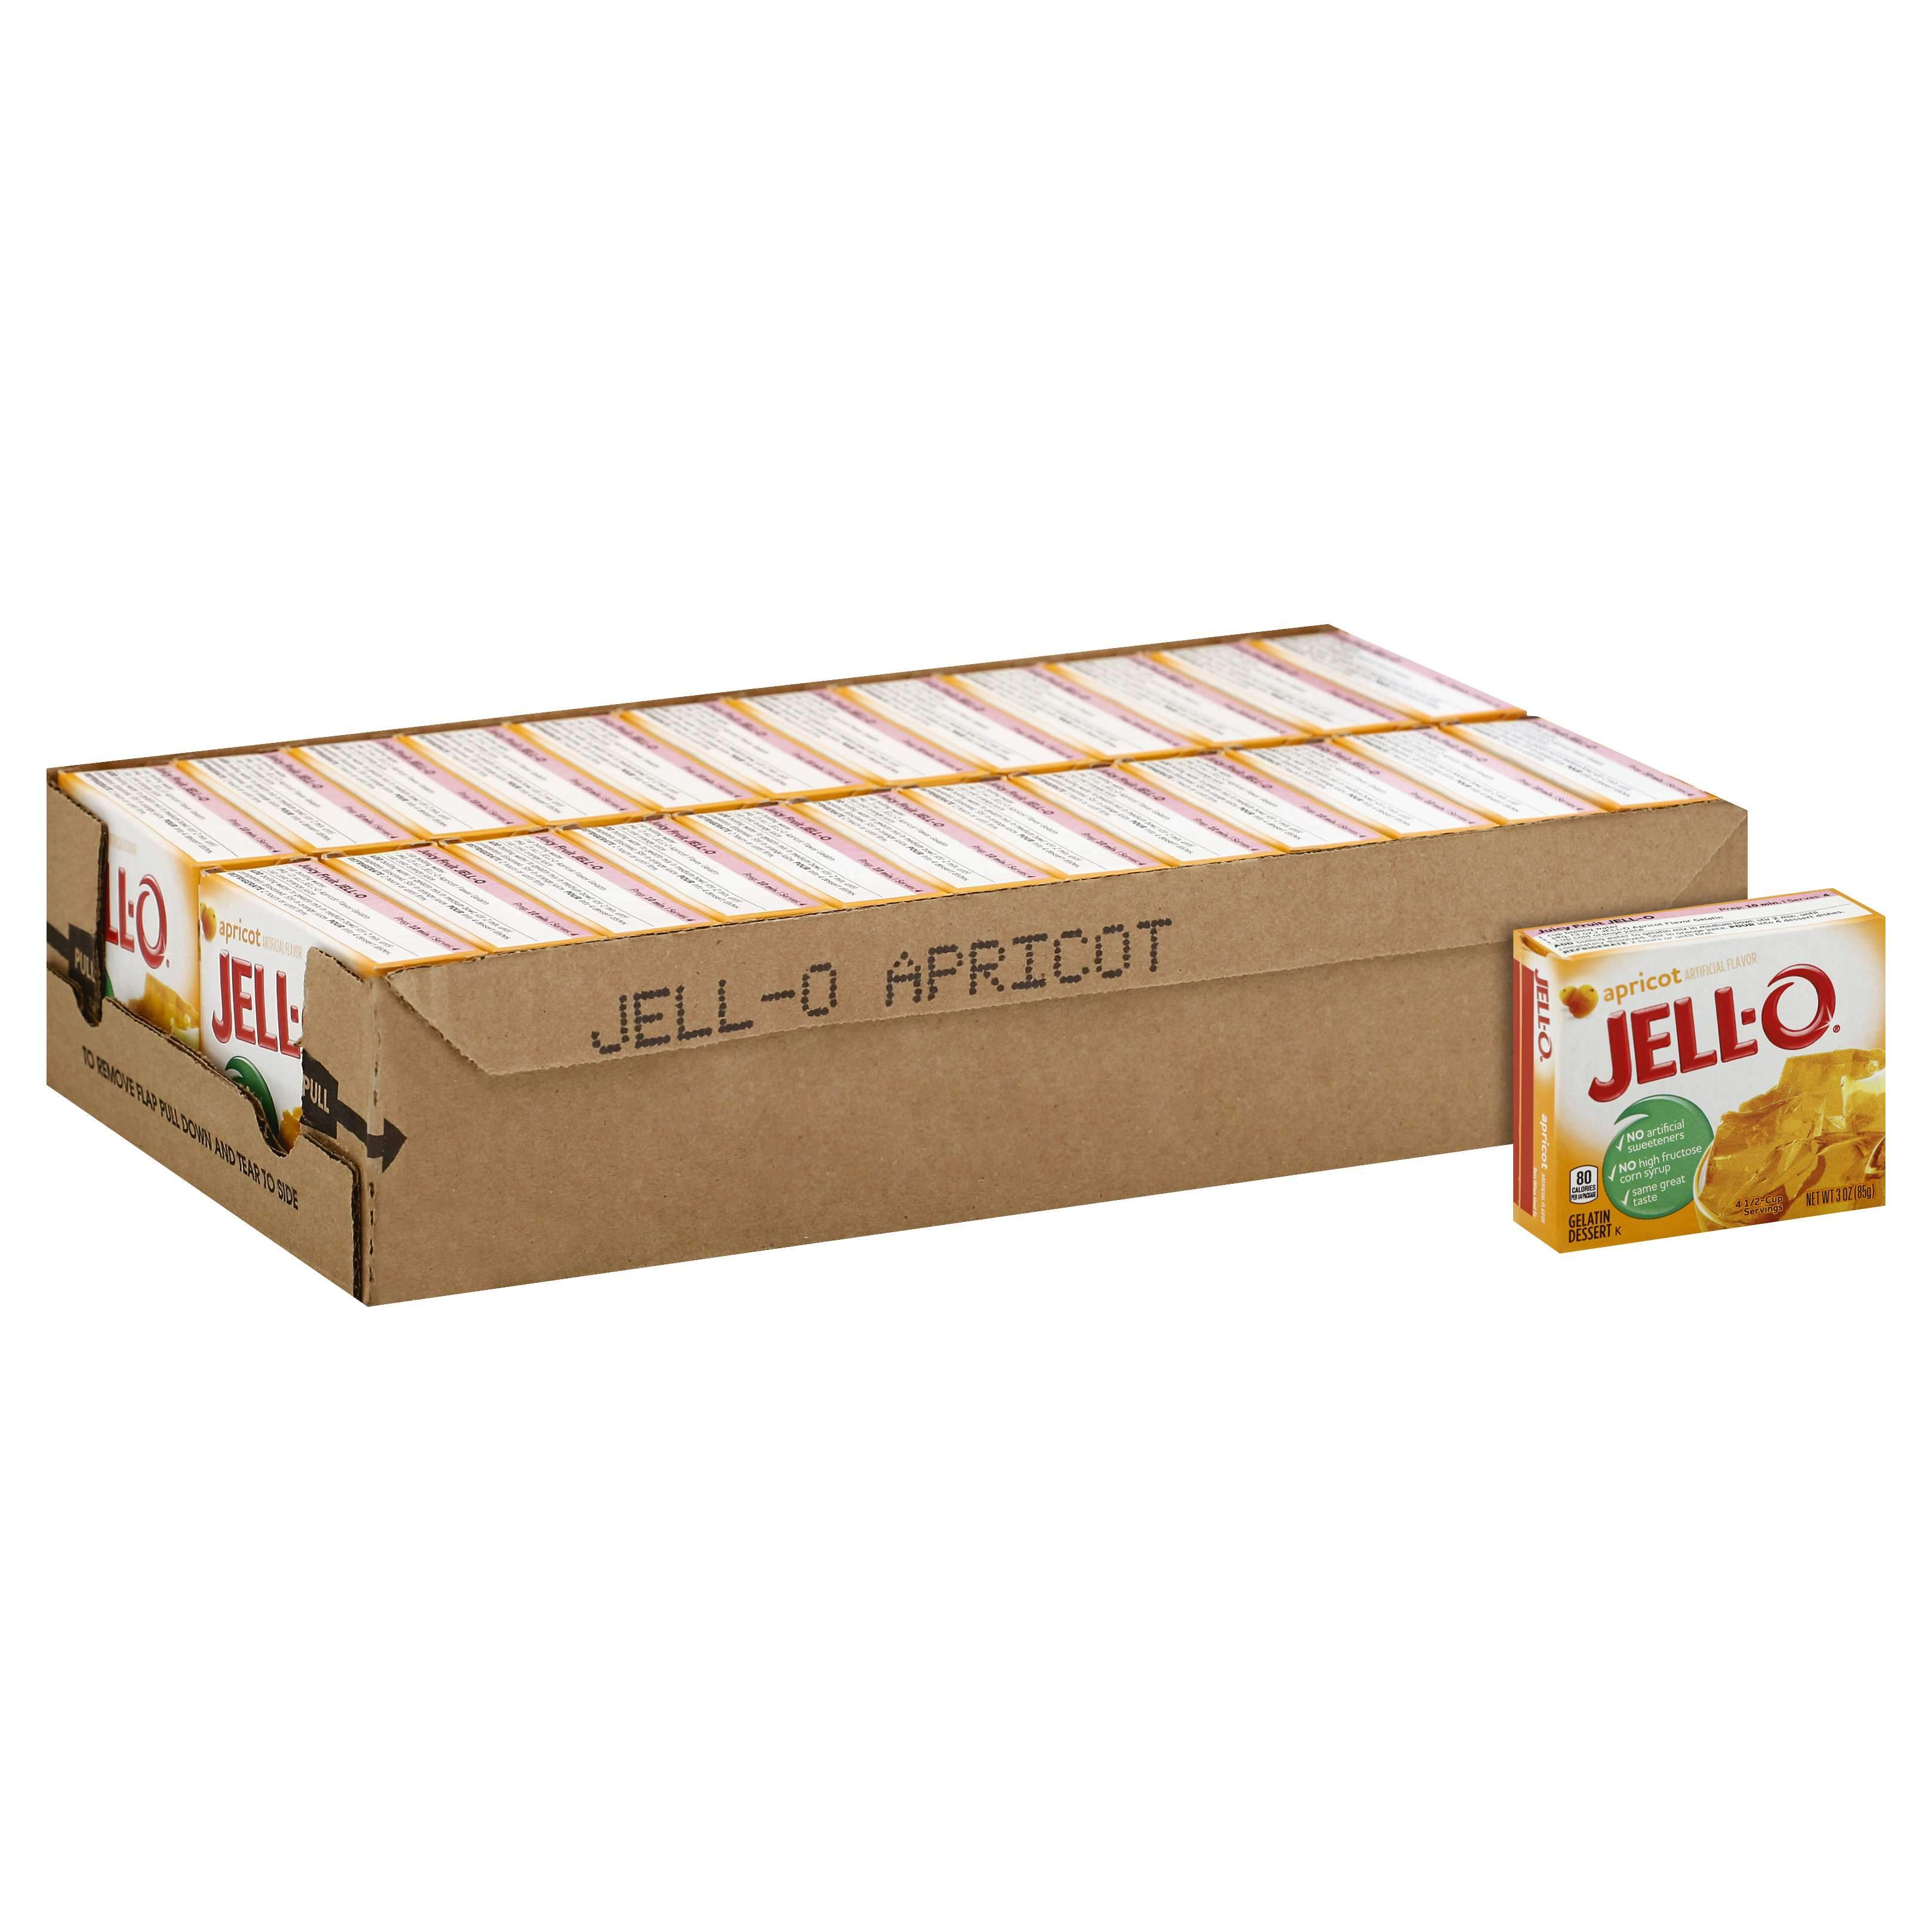 Jell-O Gelatin Mix Jell-O Apricot 3 Oz-24 Count